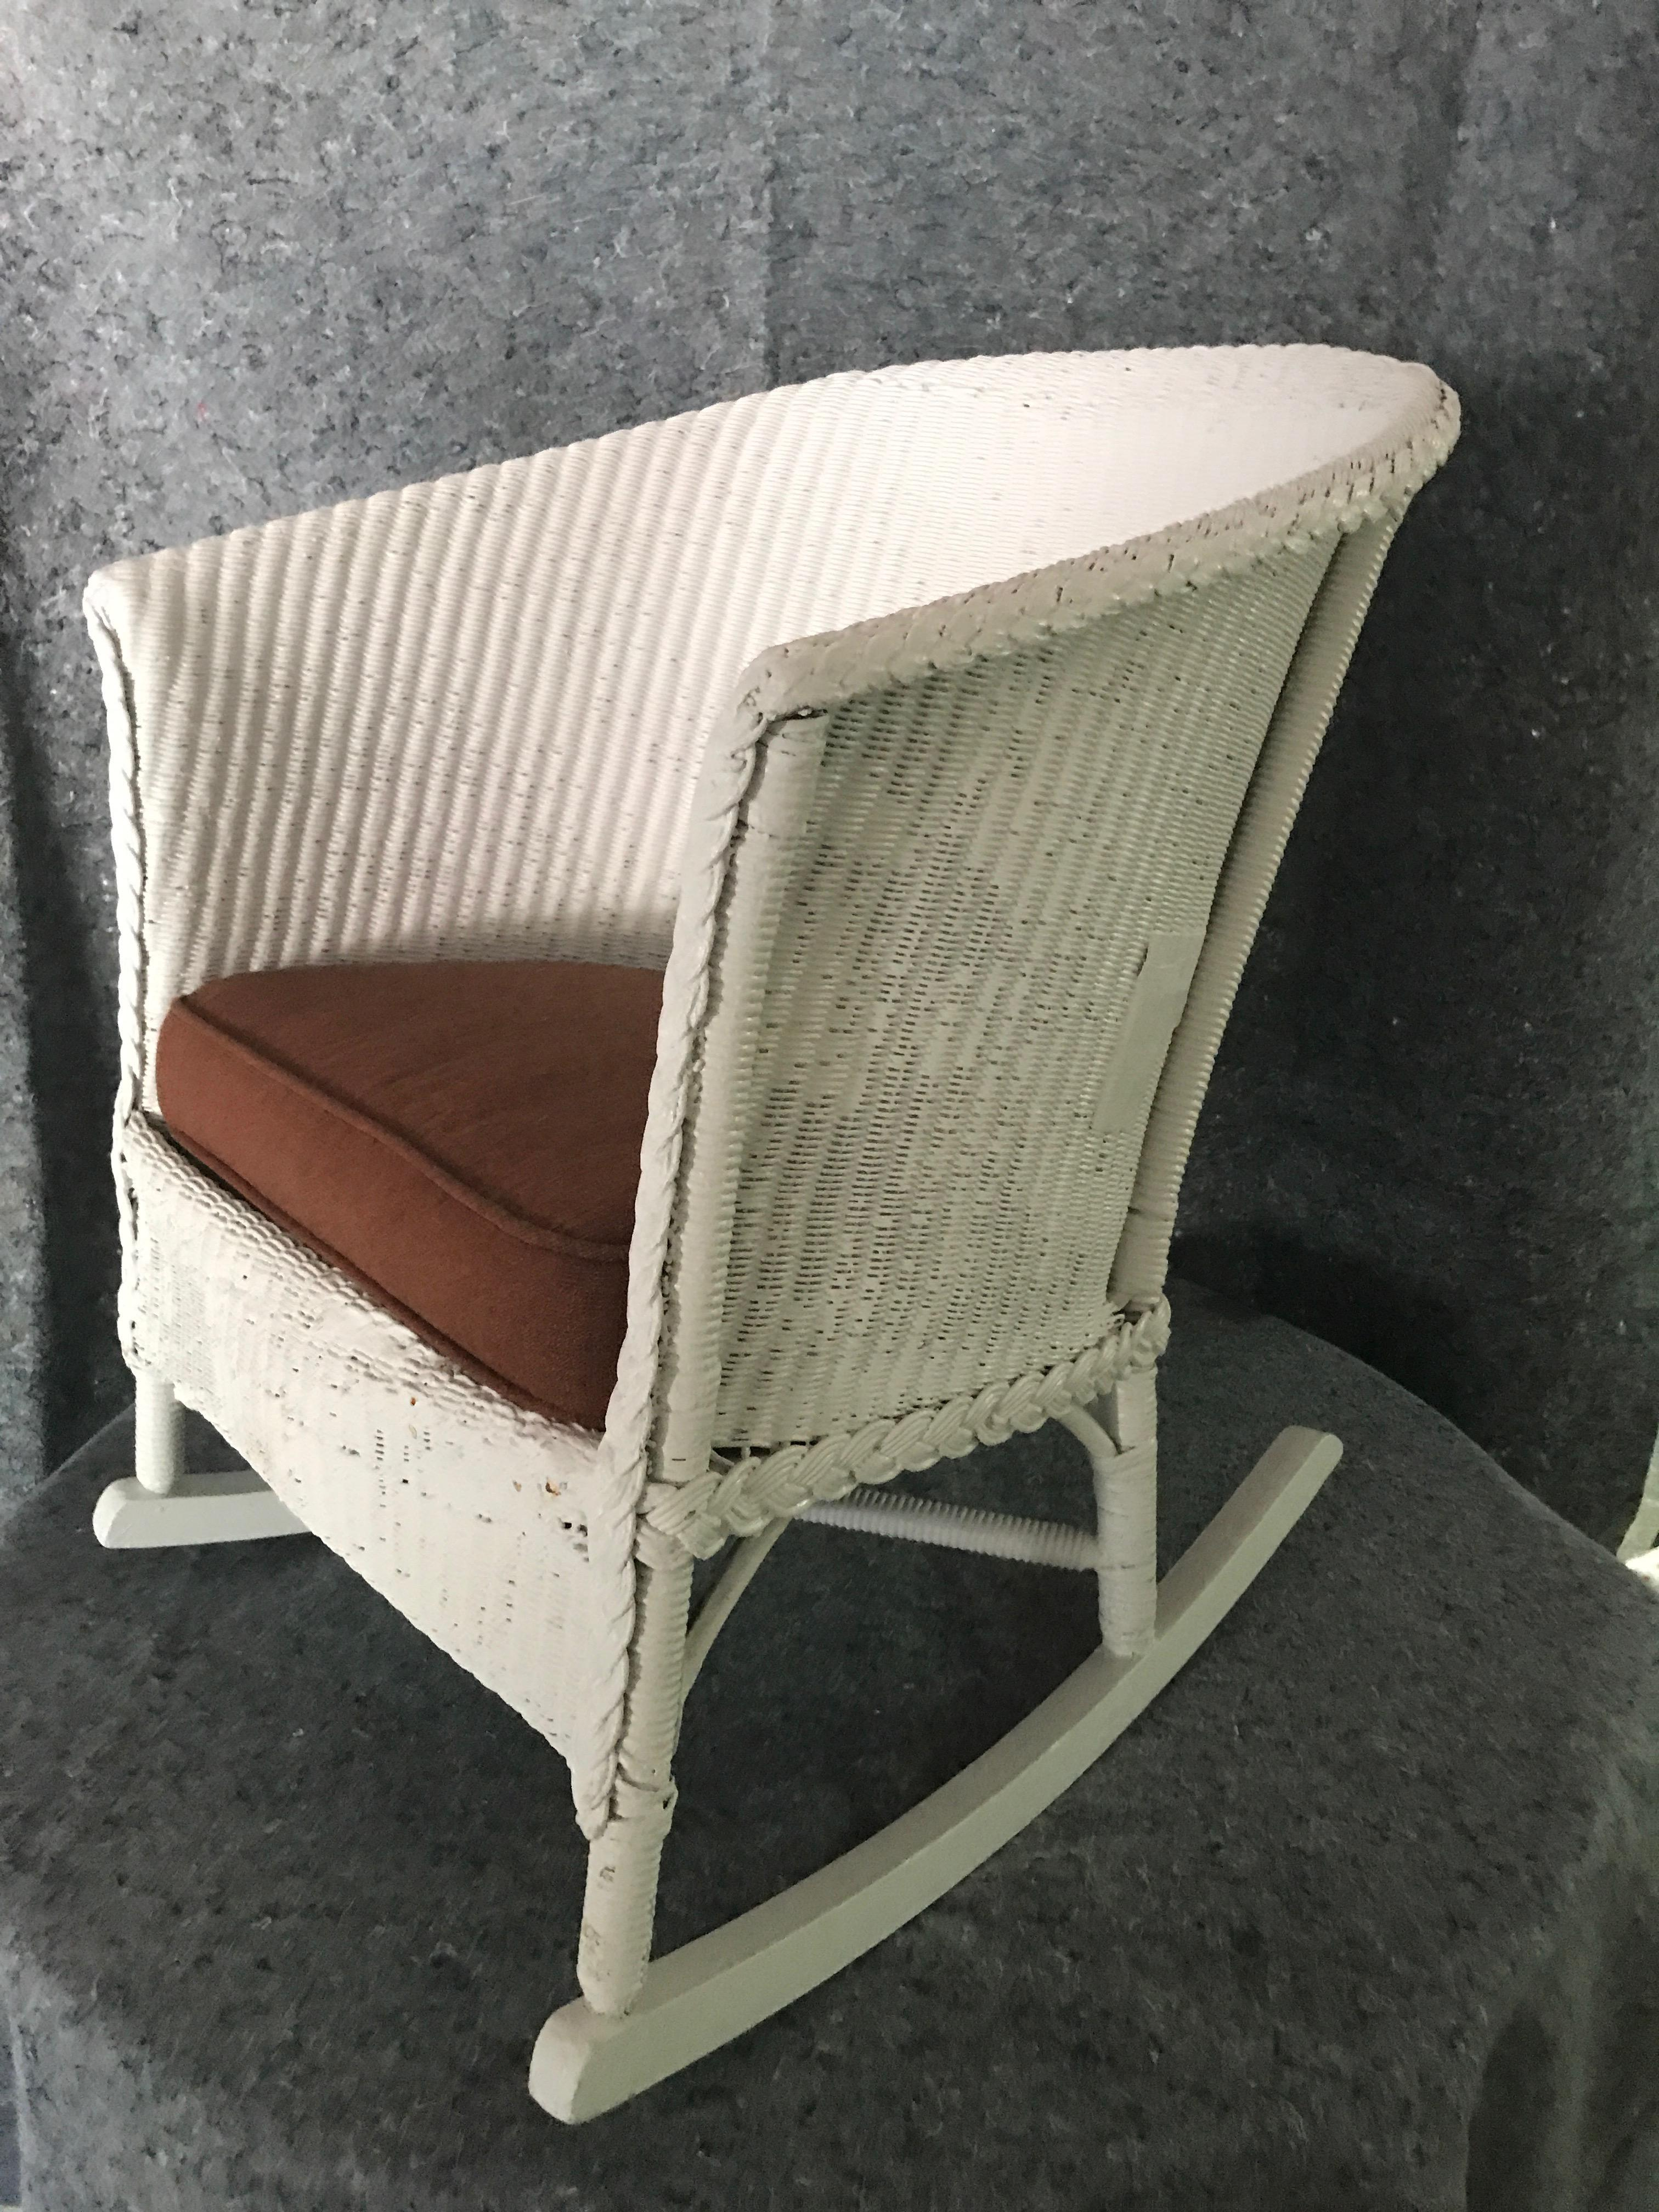 Lloyd Loom White Wicker Rocker With Upholstered Seat   Image 3 Of 4